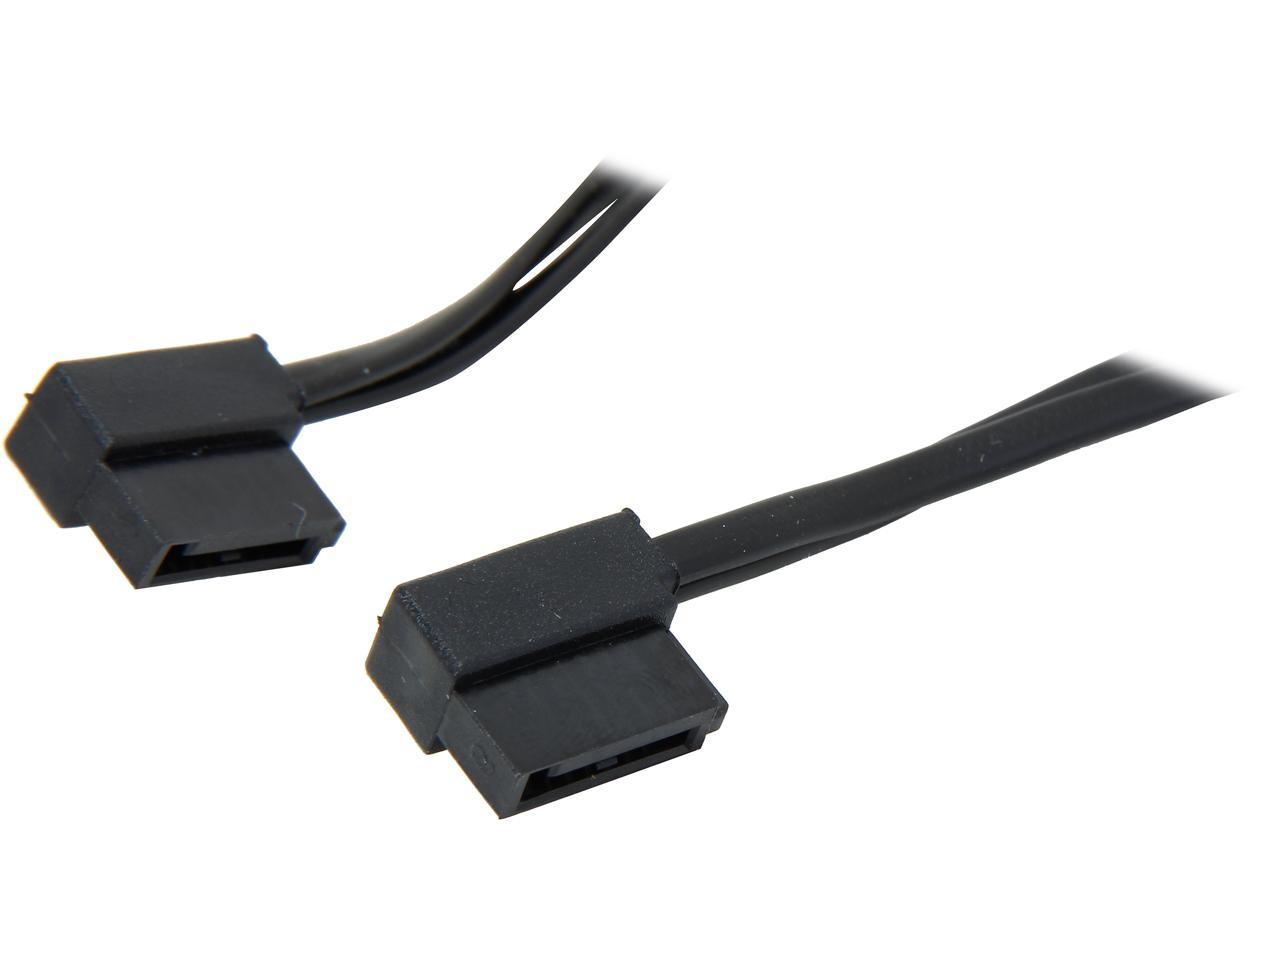 Silverstone Tek CP11B-500 500mm Ultra Thin 6Gb//s Lateral 90-Degree SATA Cables